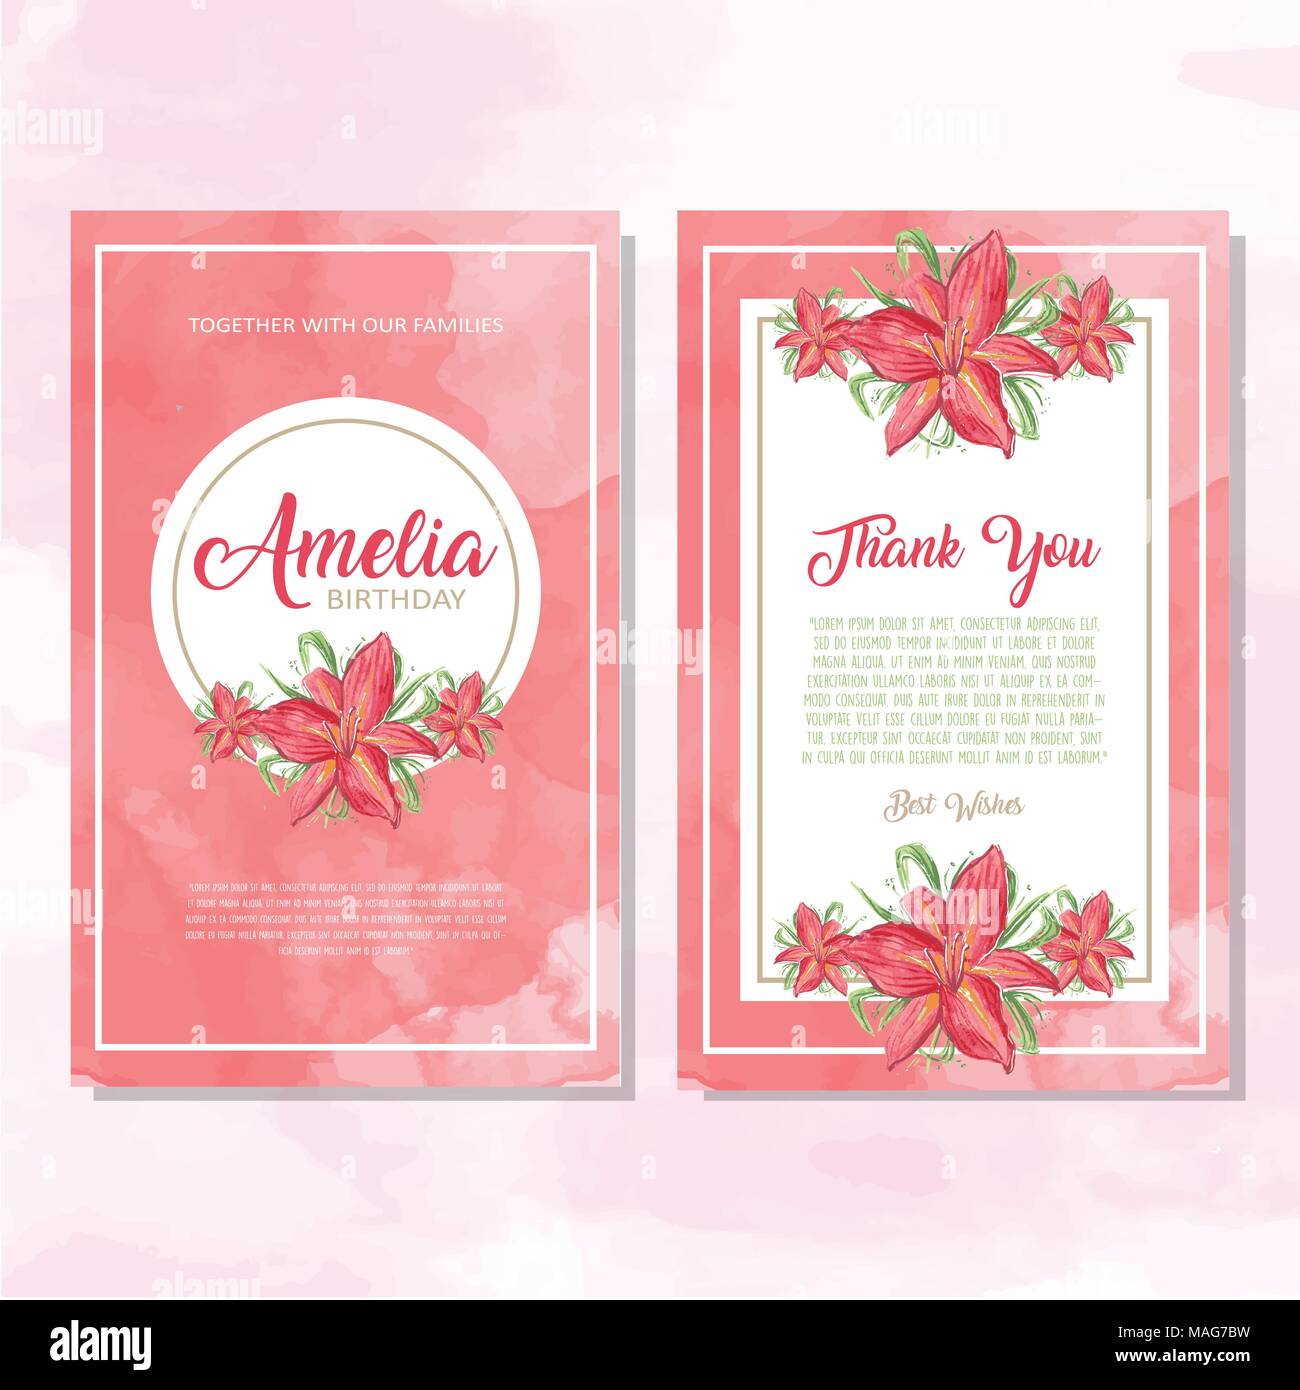 Colorful invitation greetings card with ornaments and flowers - Stock Vector